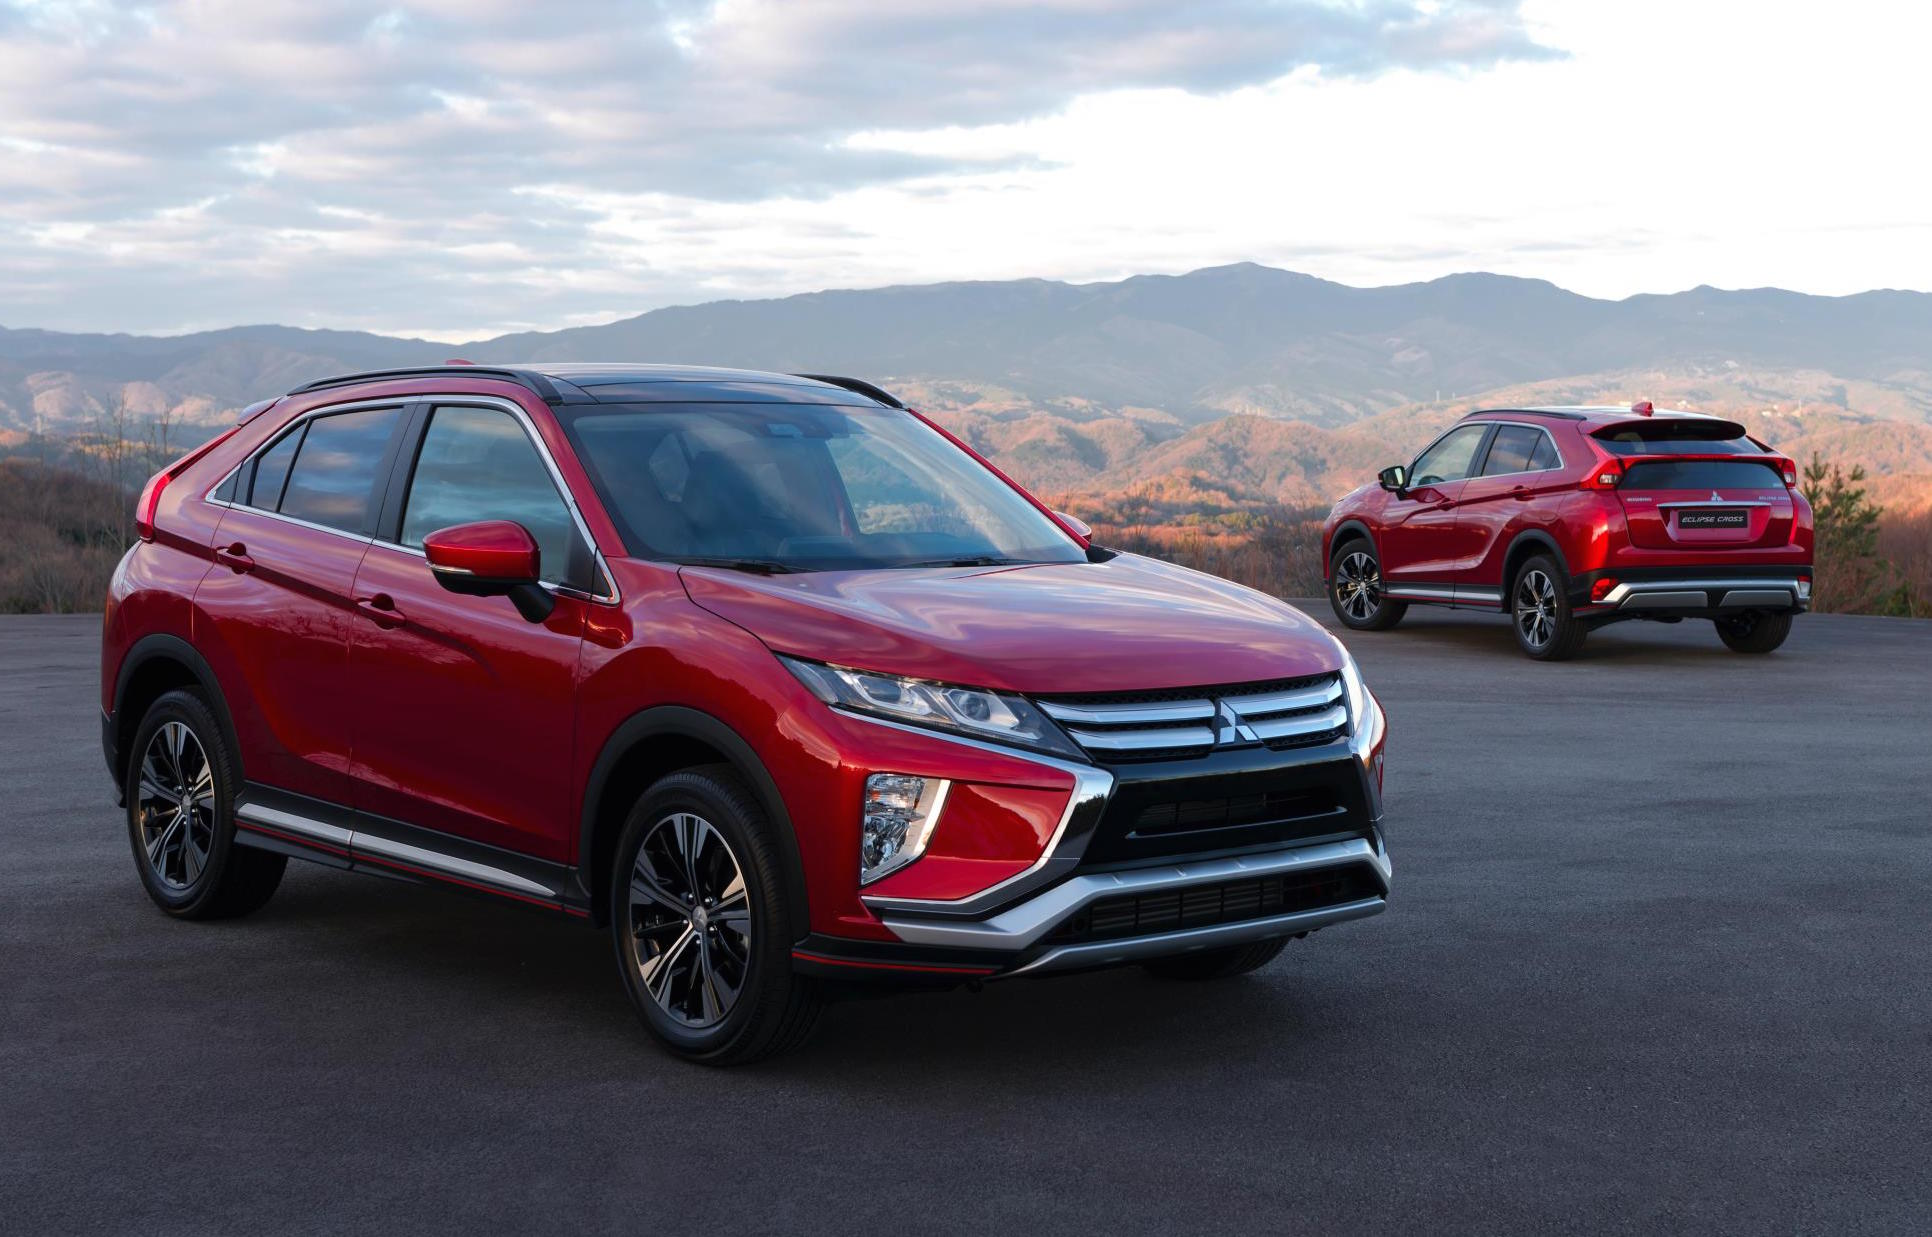 Top 10 Best Small Suvs Coming To Australia In 2018 2019 Top10cars